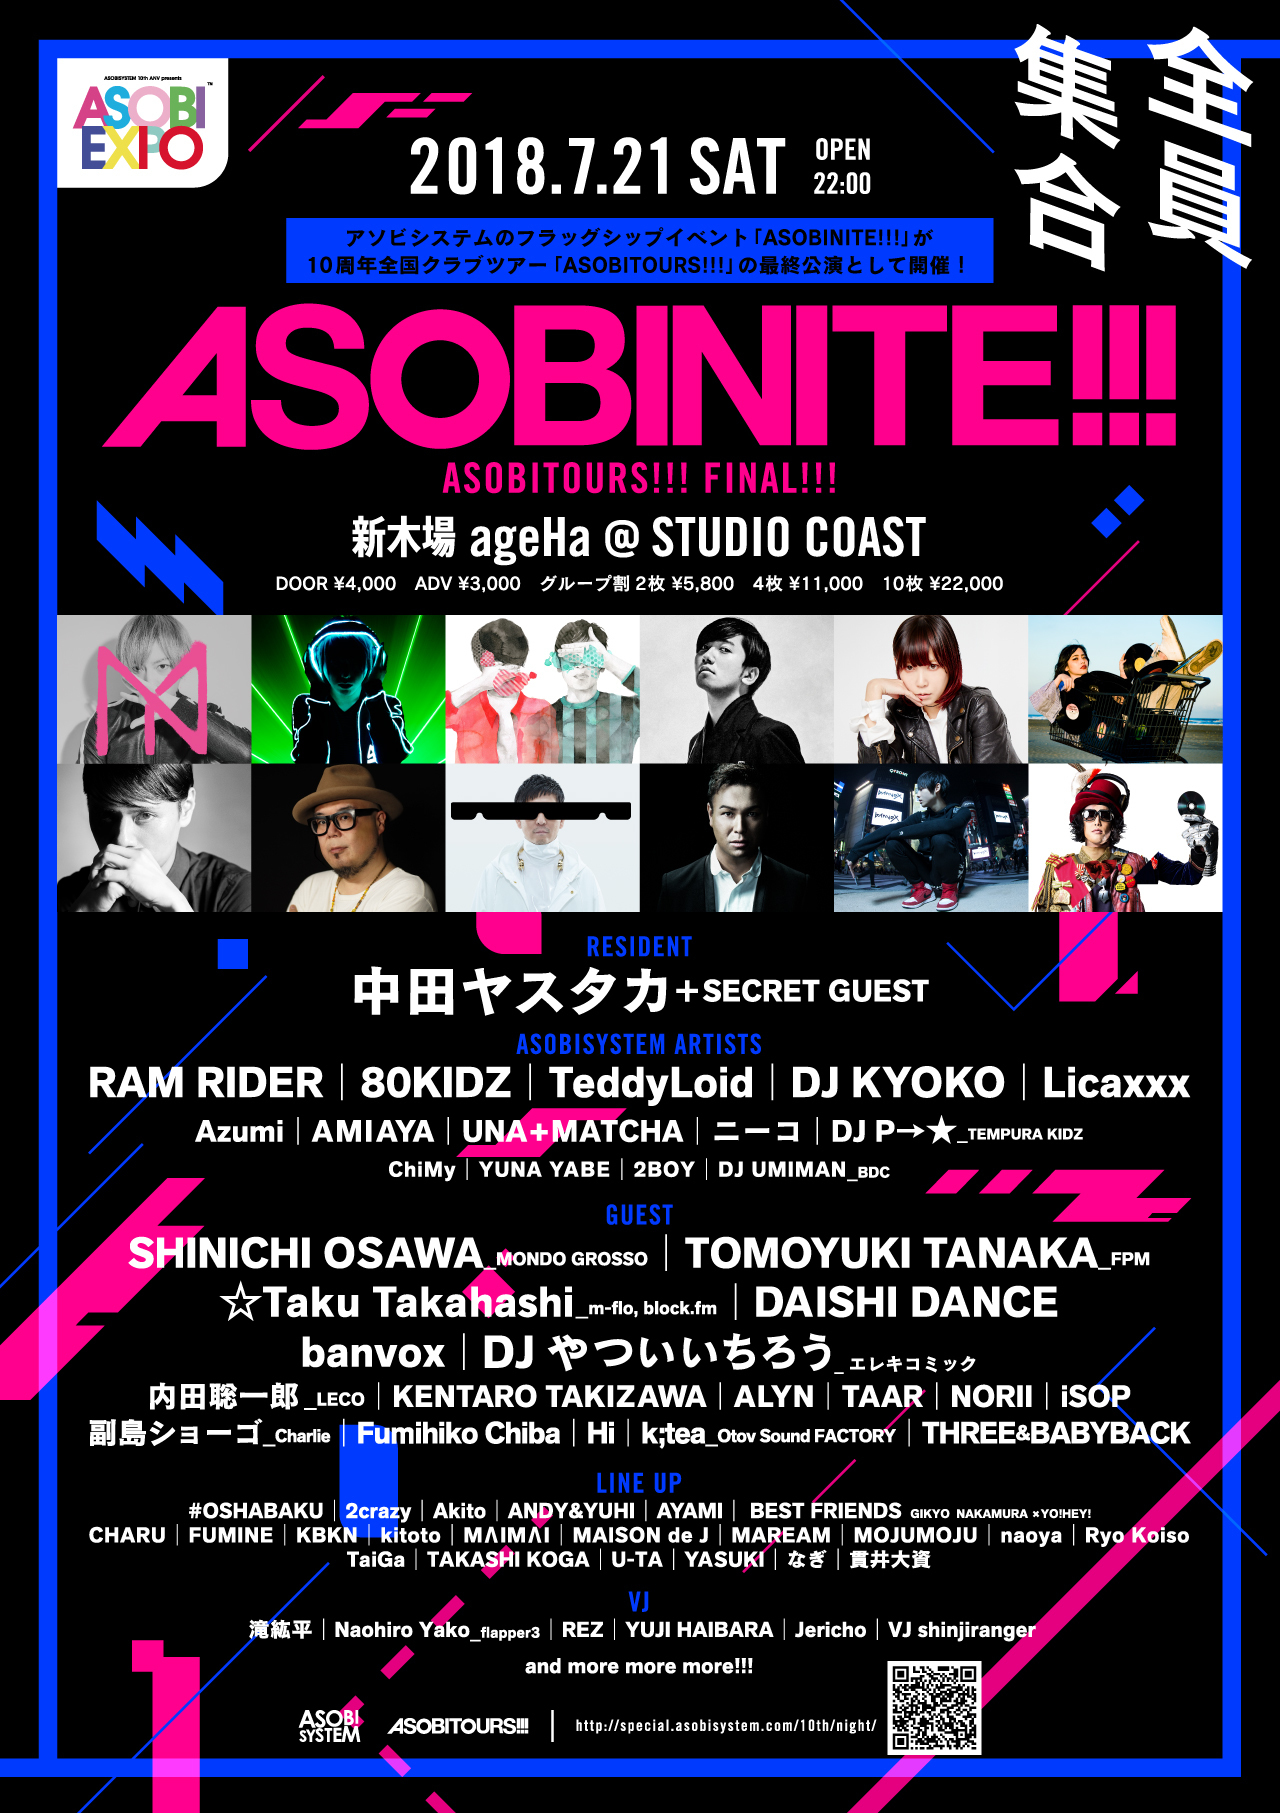 ASOBISYSTEM 10TH ANV presents 「ASOBIEXPO」 ASOBINITE!!!